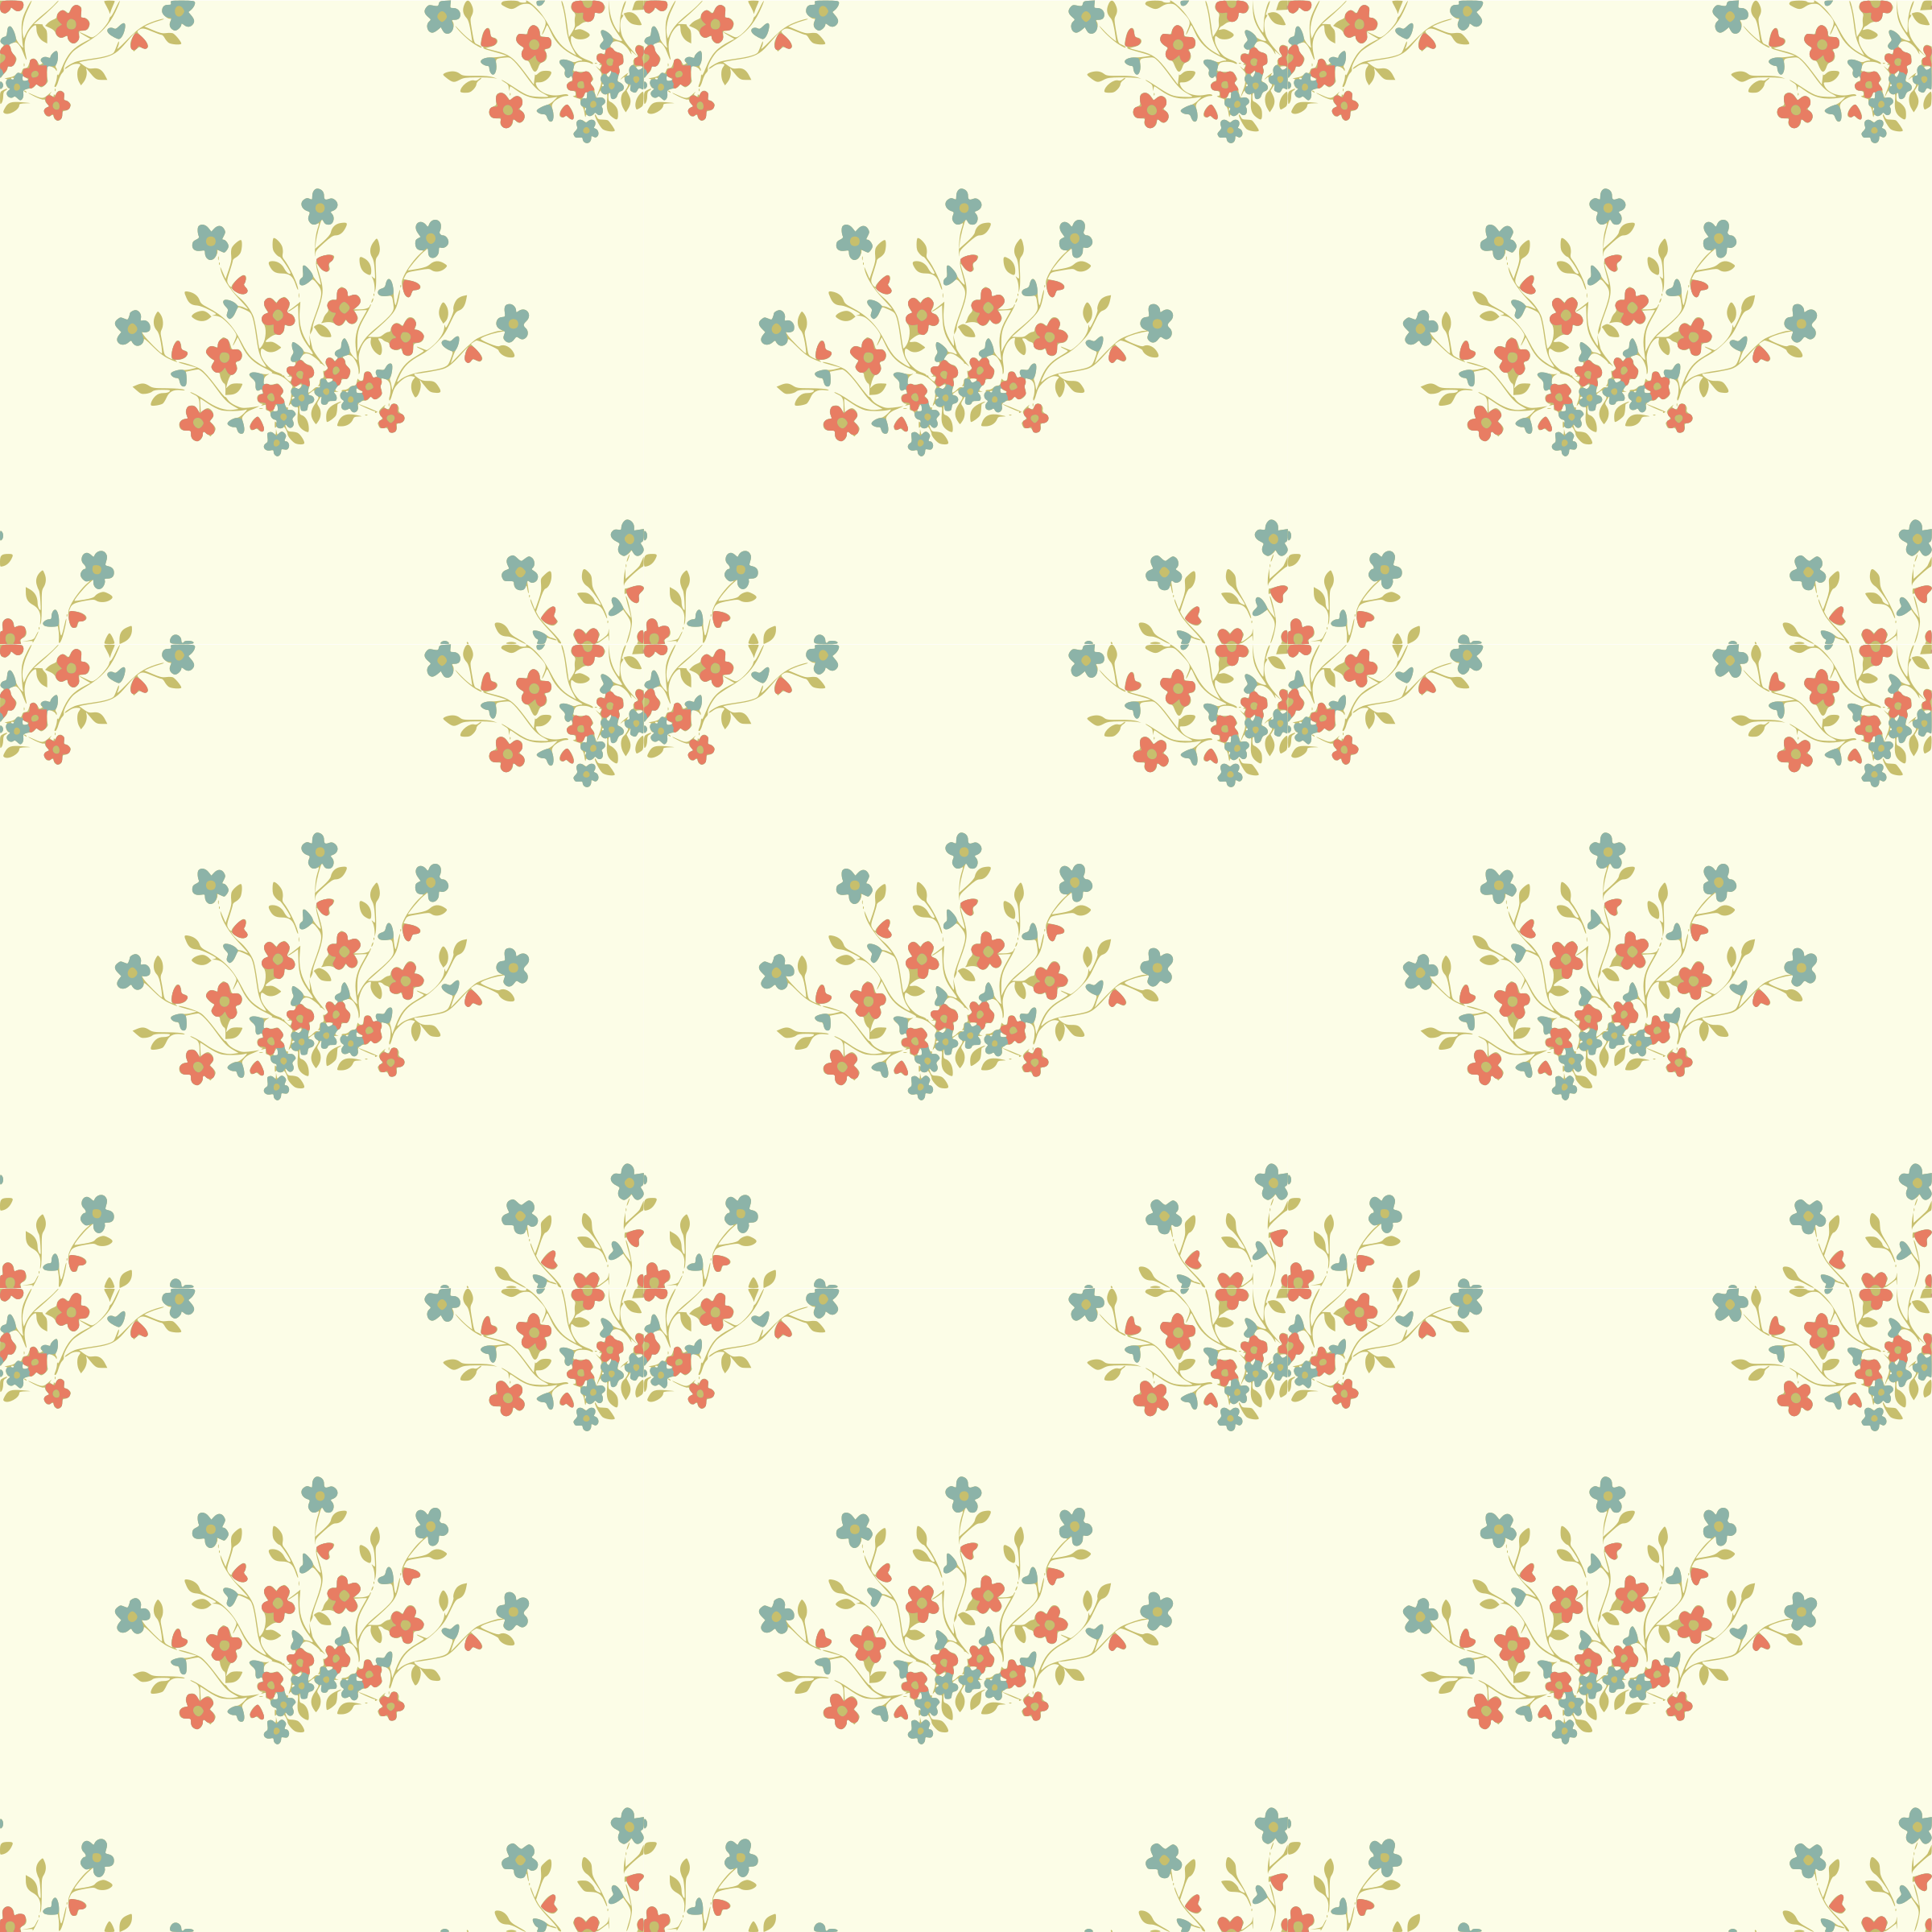 Flower-seamless pattern by yamachem